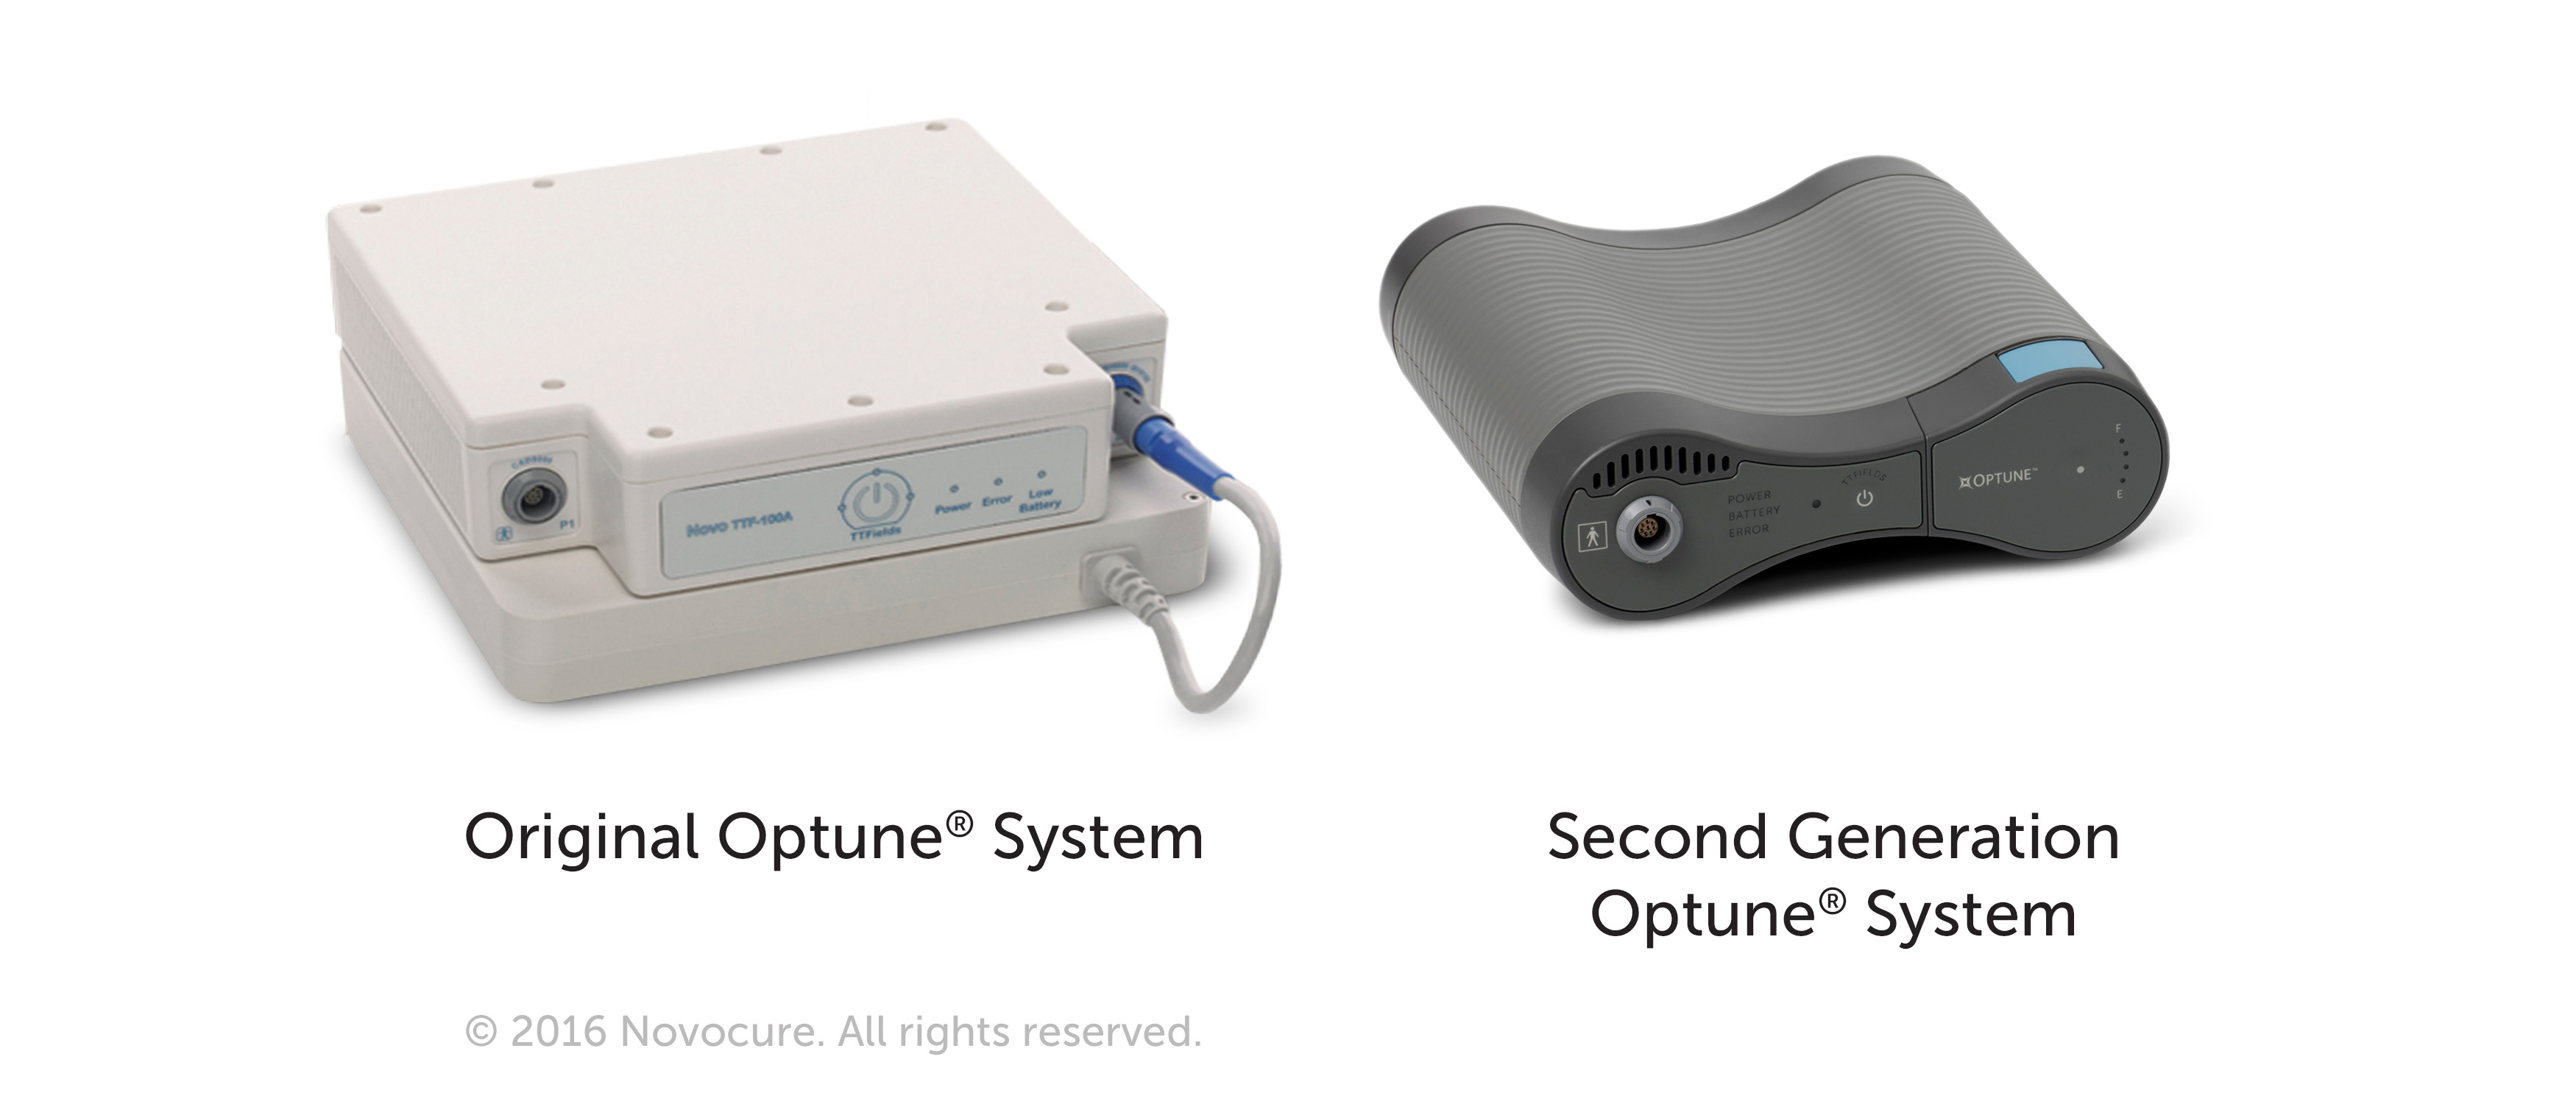 Novocure Receives Fda Approval For Second Generation Optune System